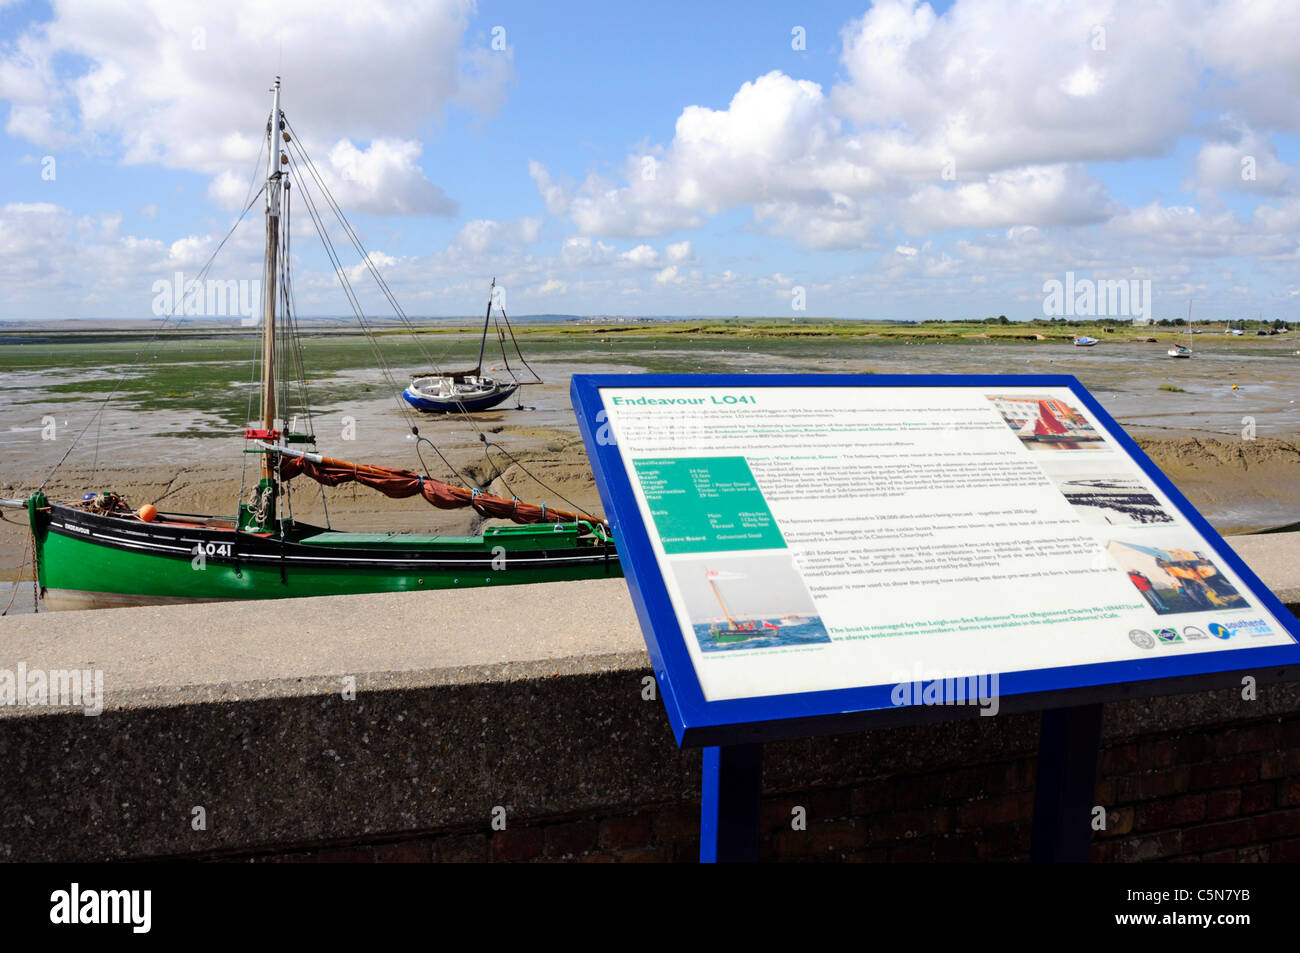 Information panel at Leigh on Sea describing history of one of Dunkirk Little Ships from world war 2 Endeavour LO41 - Stock Image